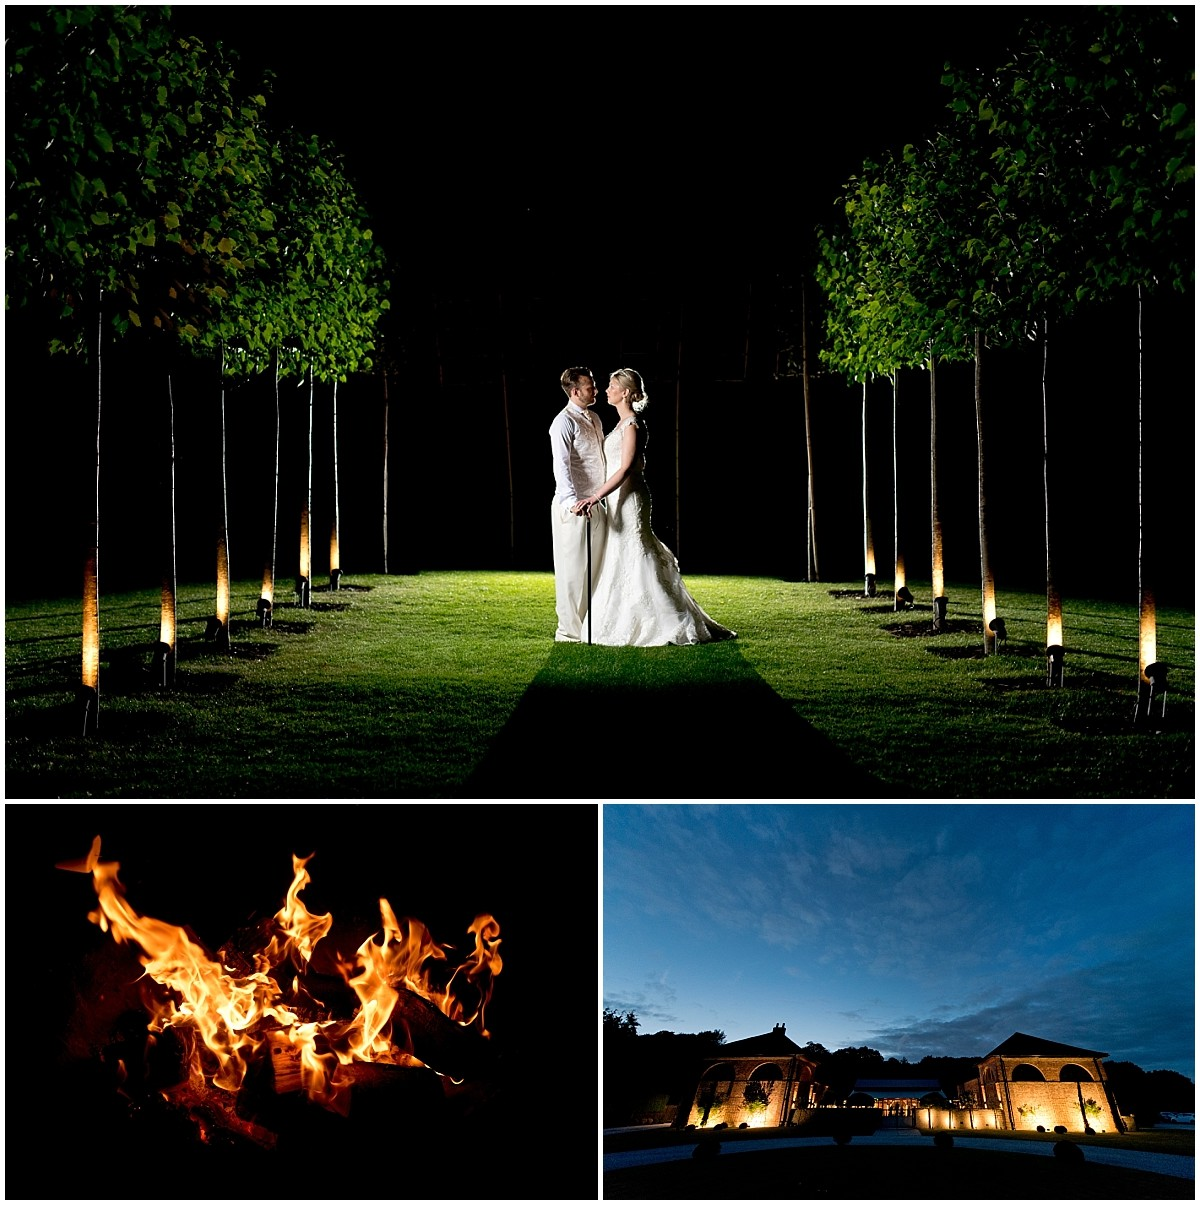 Night shot of bride and groom at Hazel Gap Barn